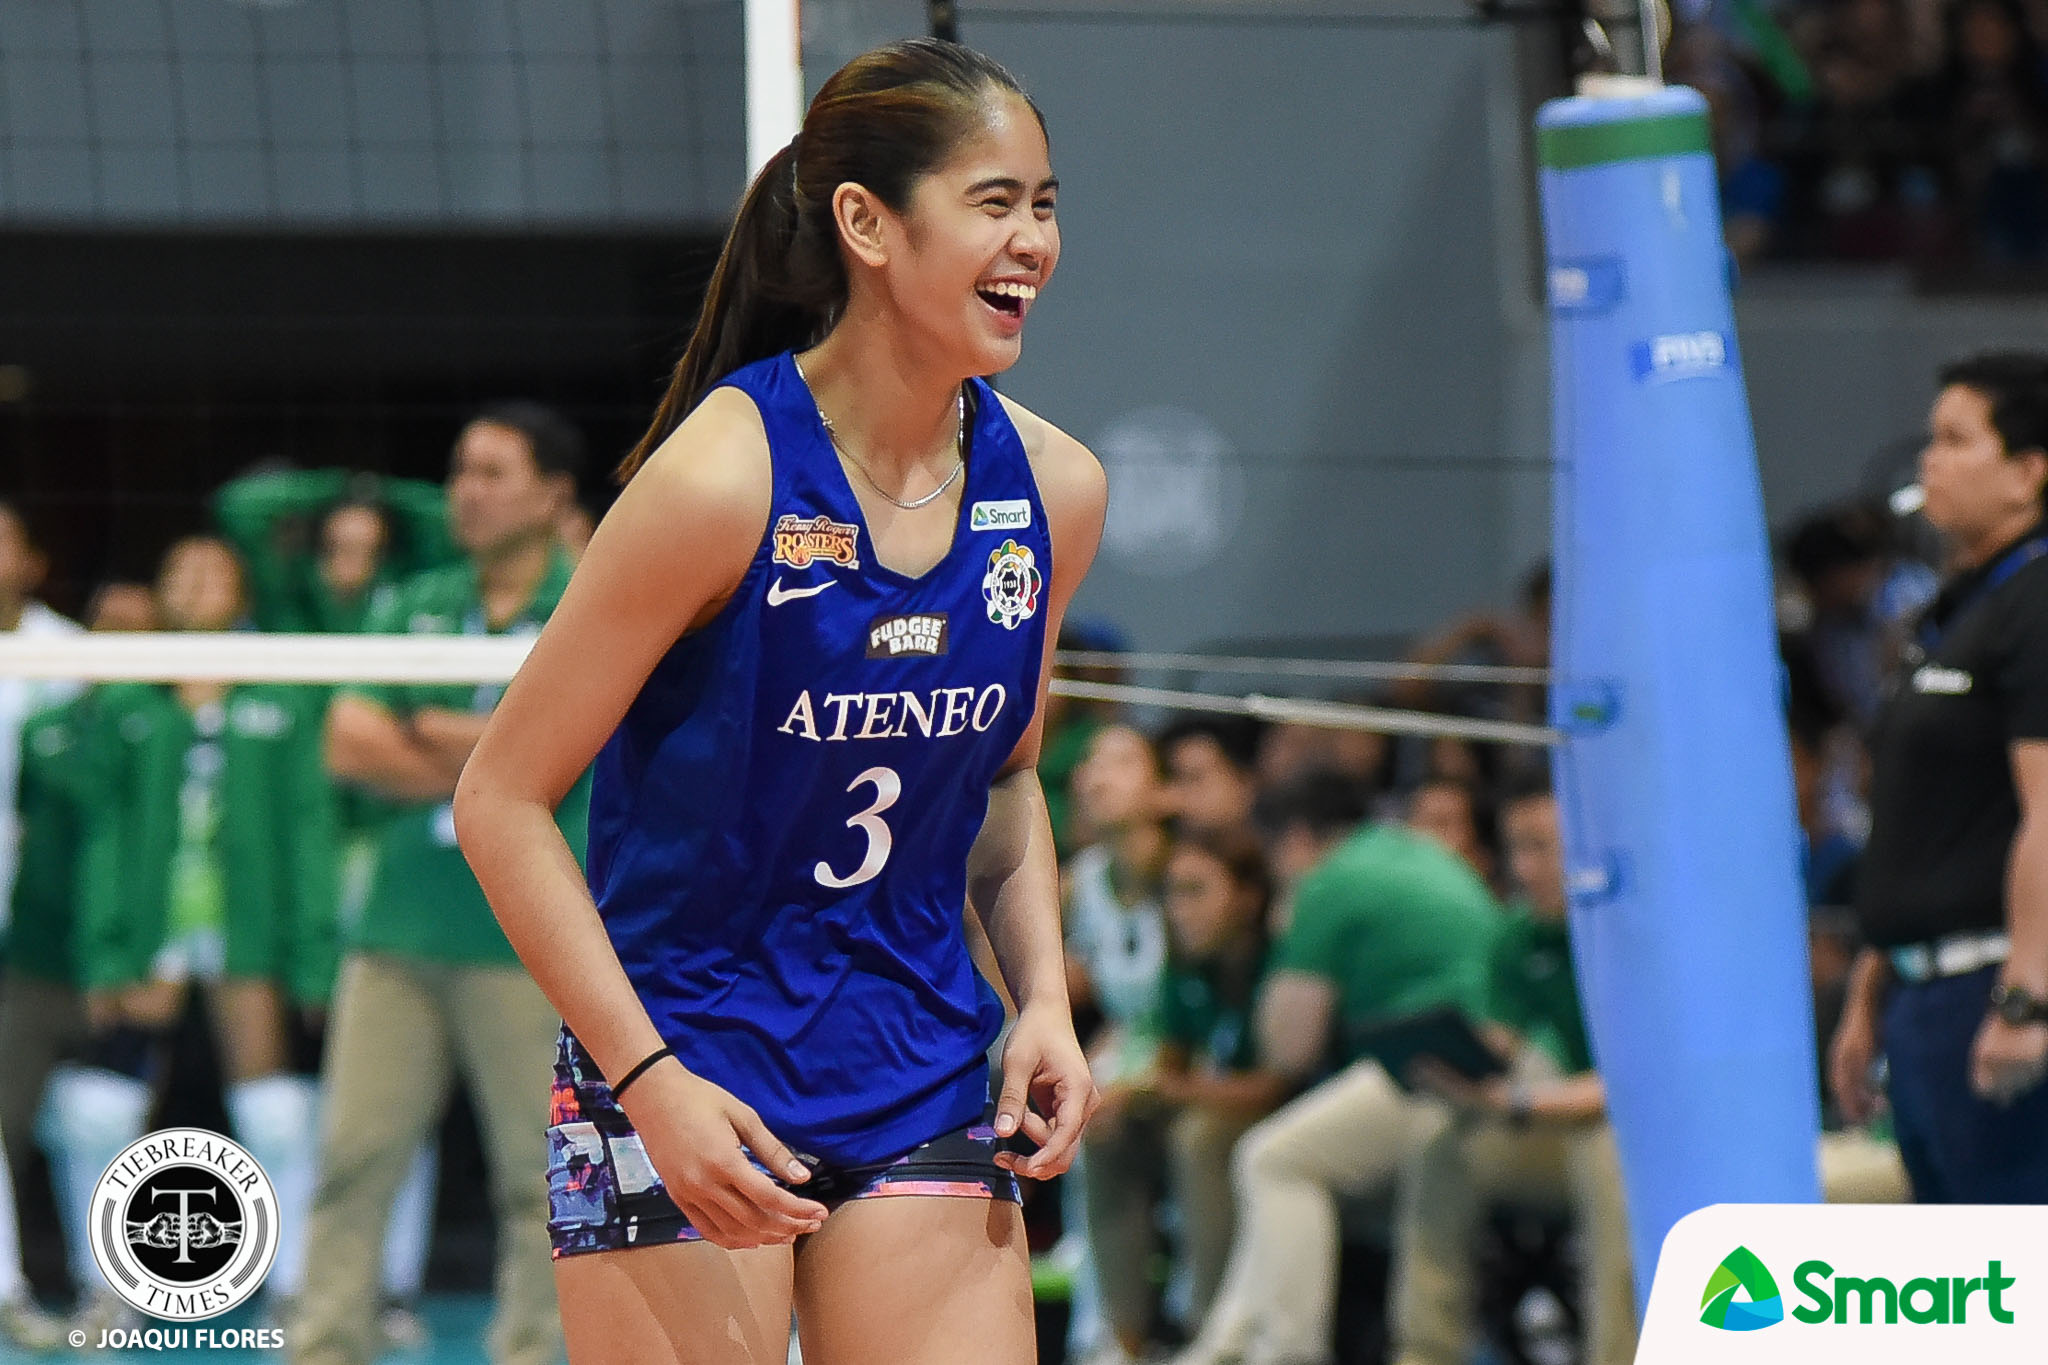 Tiebreaker Times Oliver Almadro will not change motivational ways, despite Lady Eagles fans' qualms ADMU News PVL Volleyball  Oliver Almadro Ateneo-Motolite Lady Eagles 2018 PVL Season 2018 PVL Open Conference